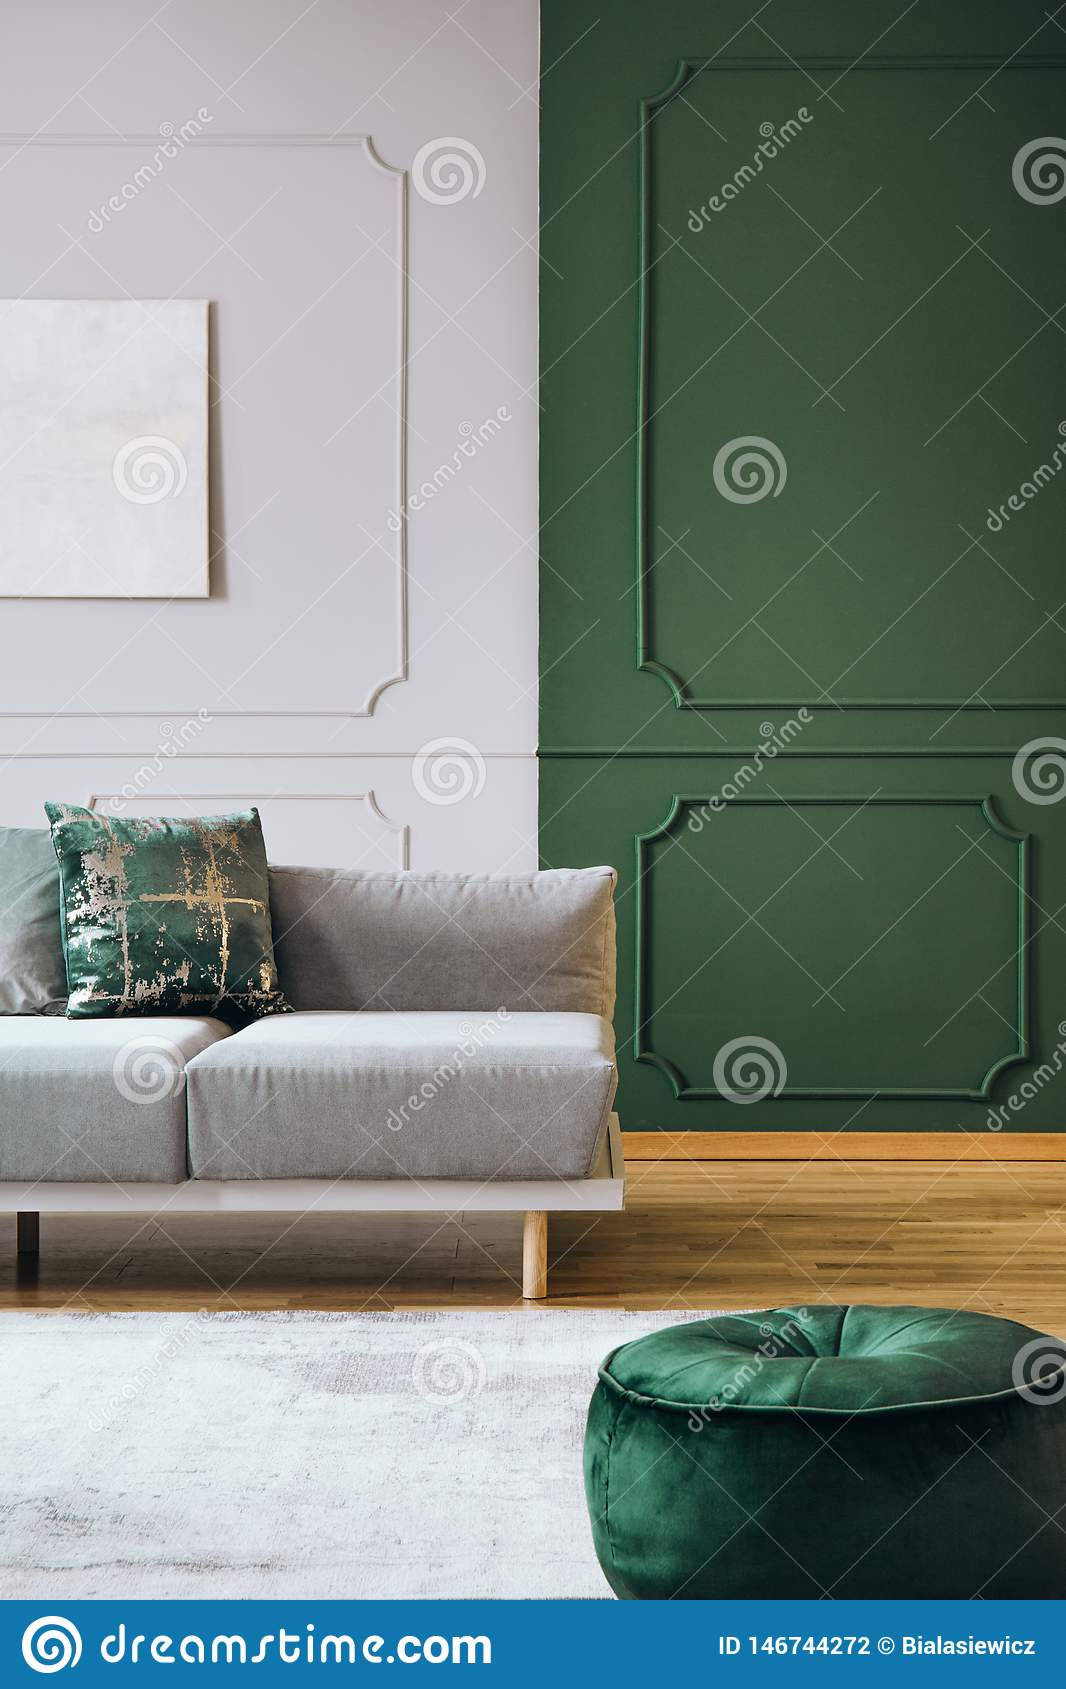 Green And Grey Wall With Molding In Chic Room Interior With